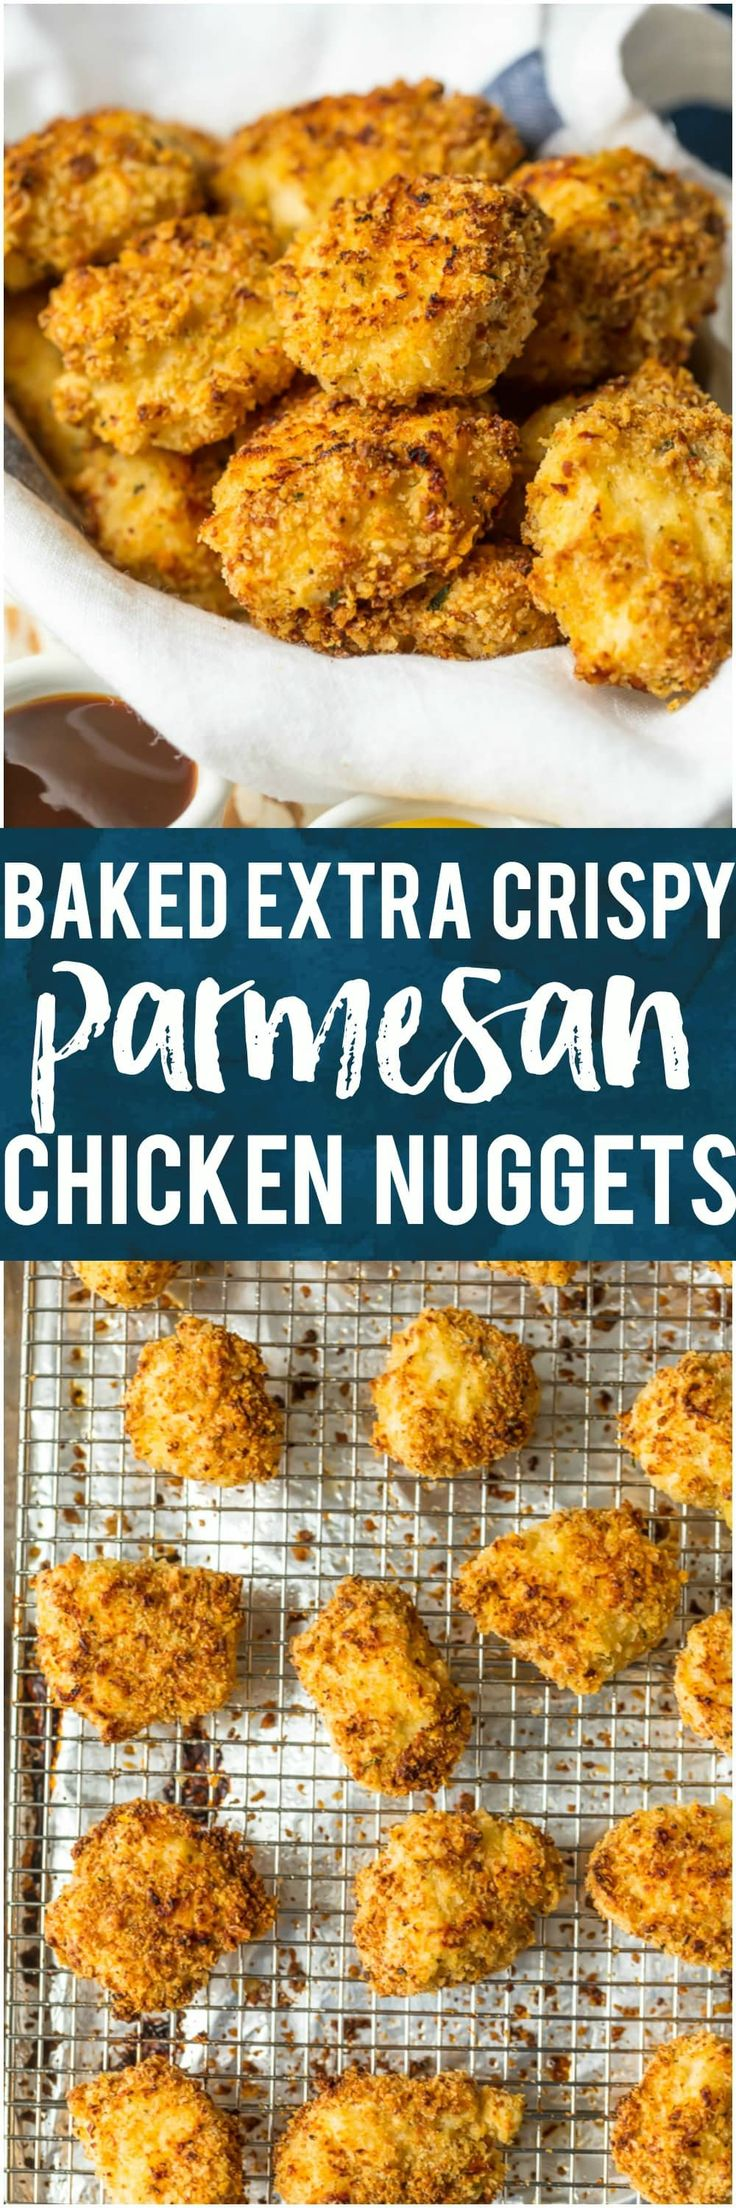 Baked extra parmesan Chicken nuggets